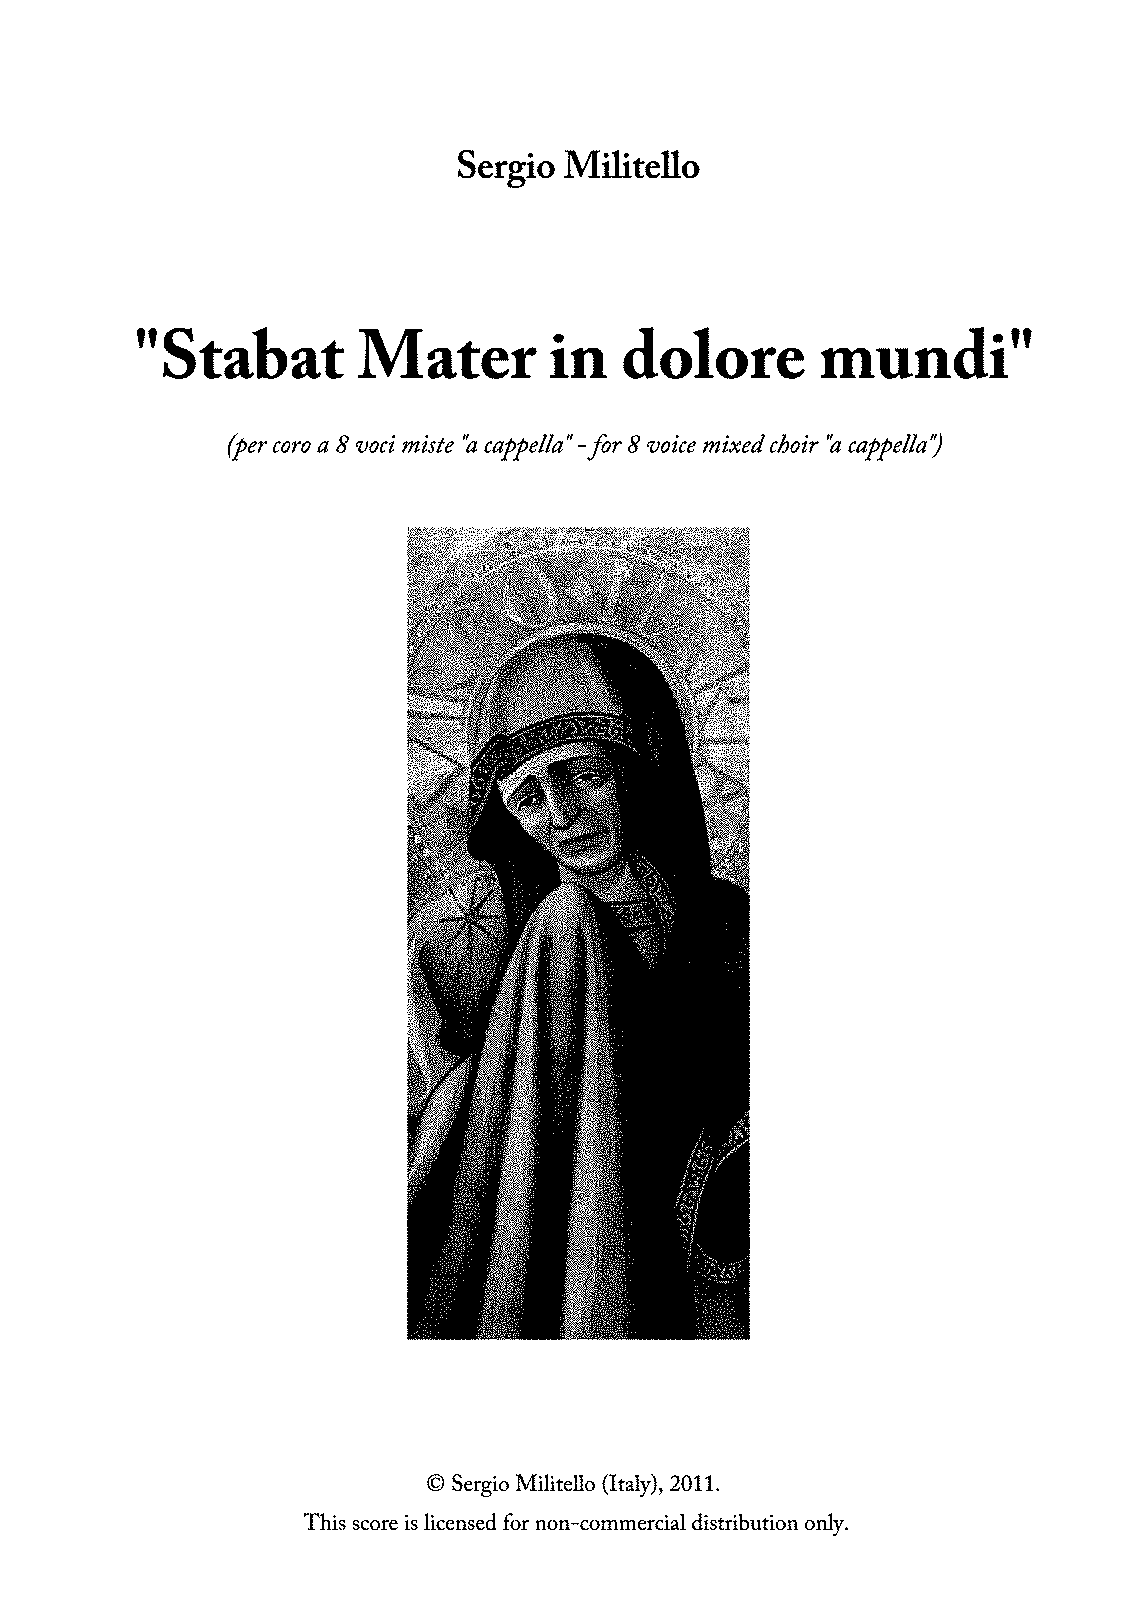 PMLP377160-Sergio Militello STABAT MATER IN DOLORE MUNDI for mixed Choir.pdf